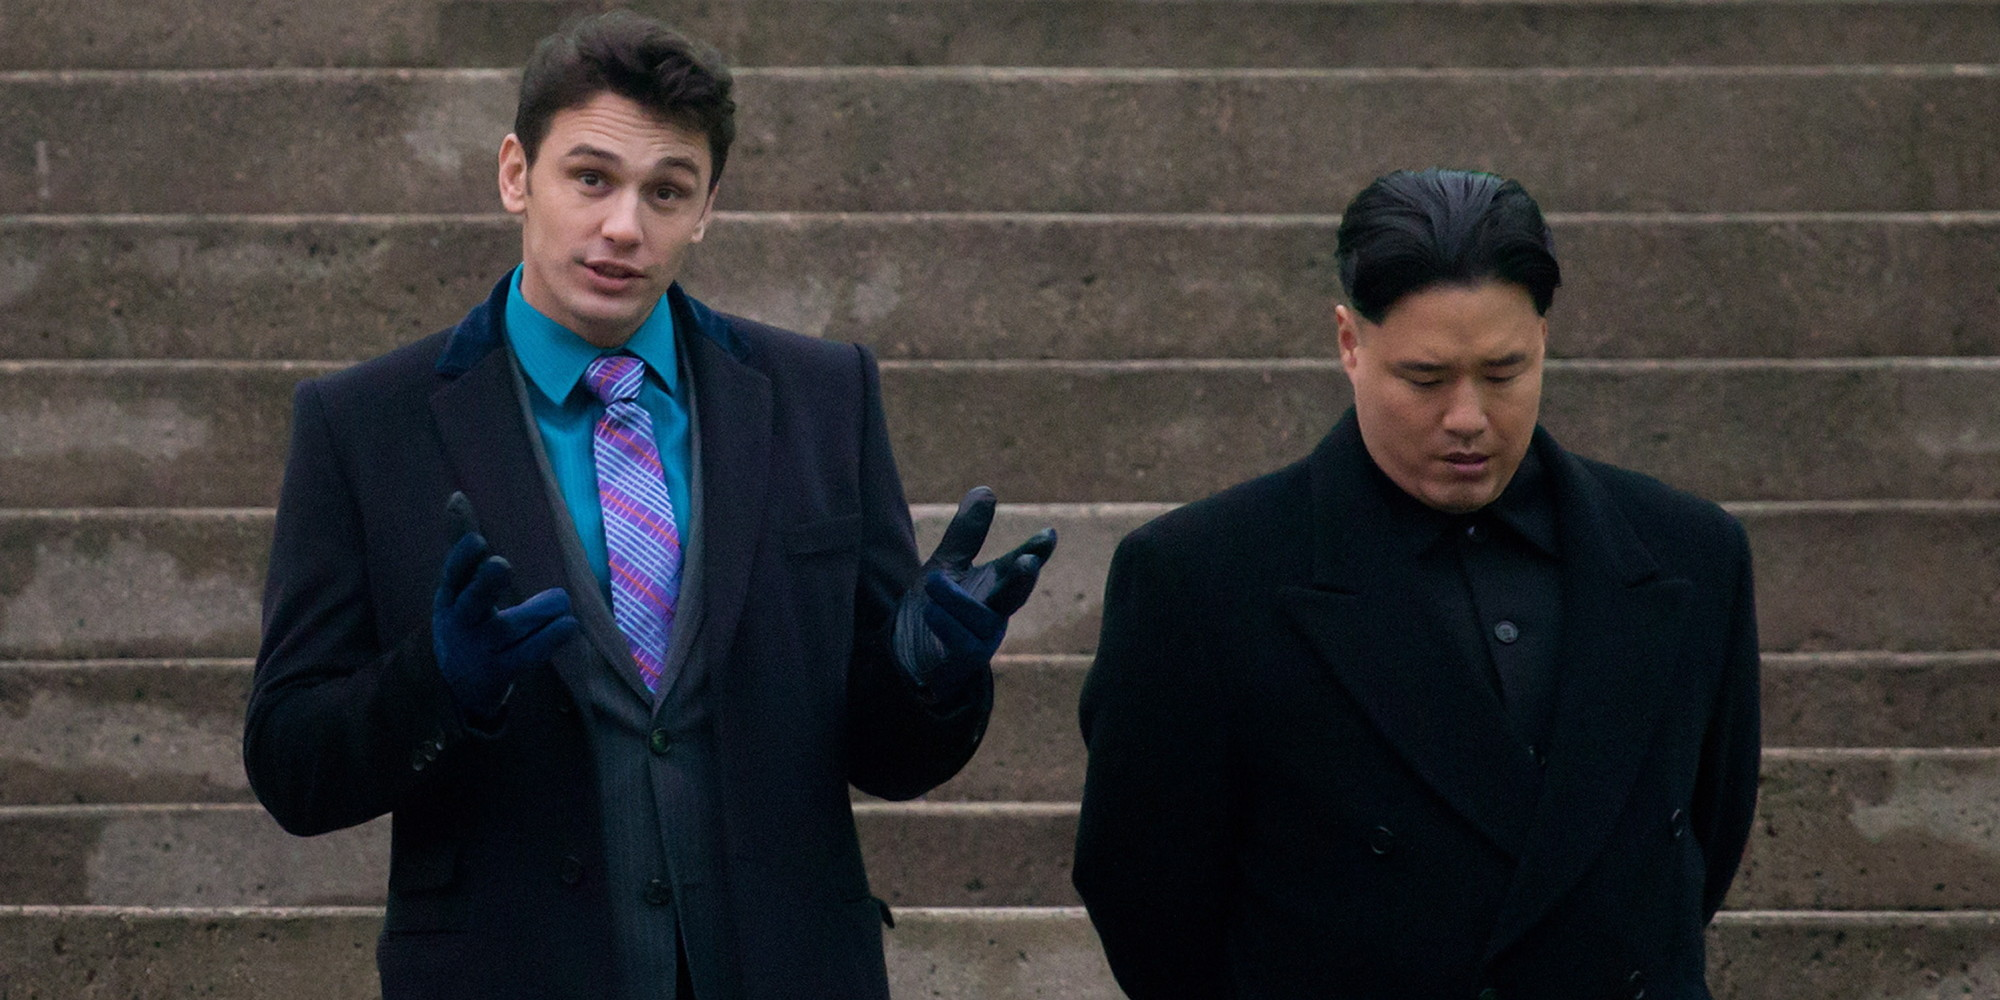 The Interview: Clearly shows the real face of Badass America.